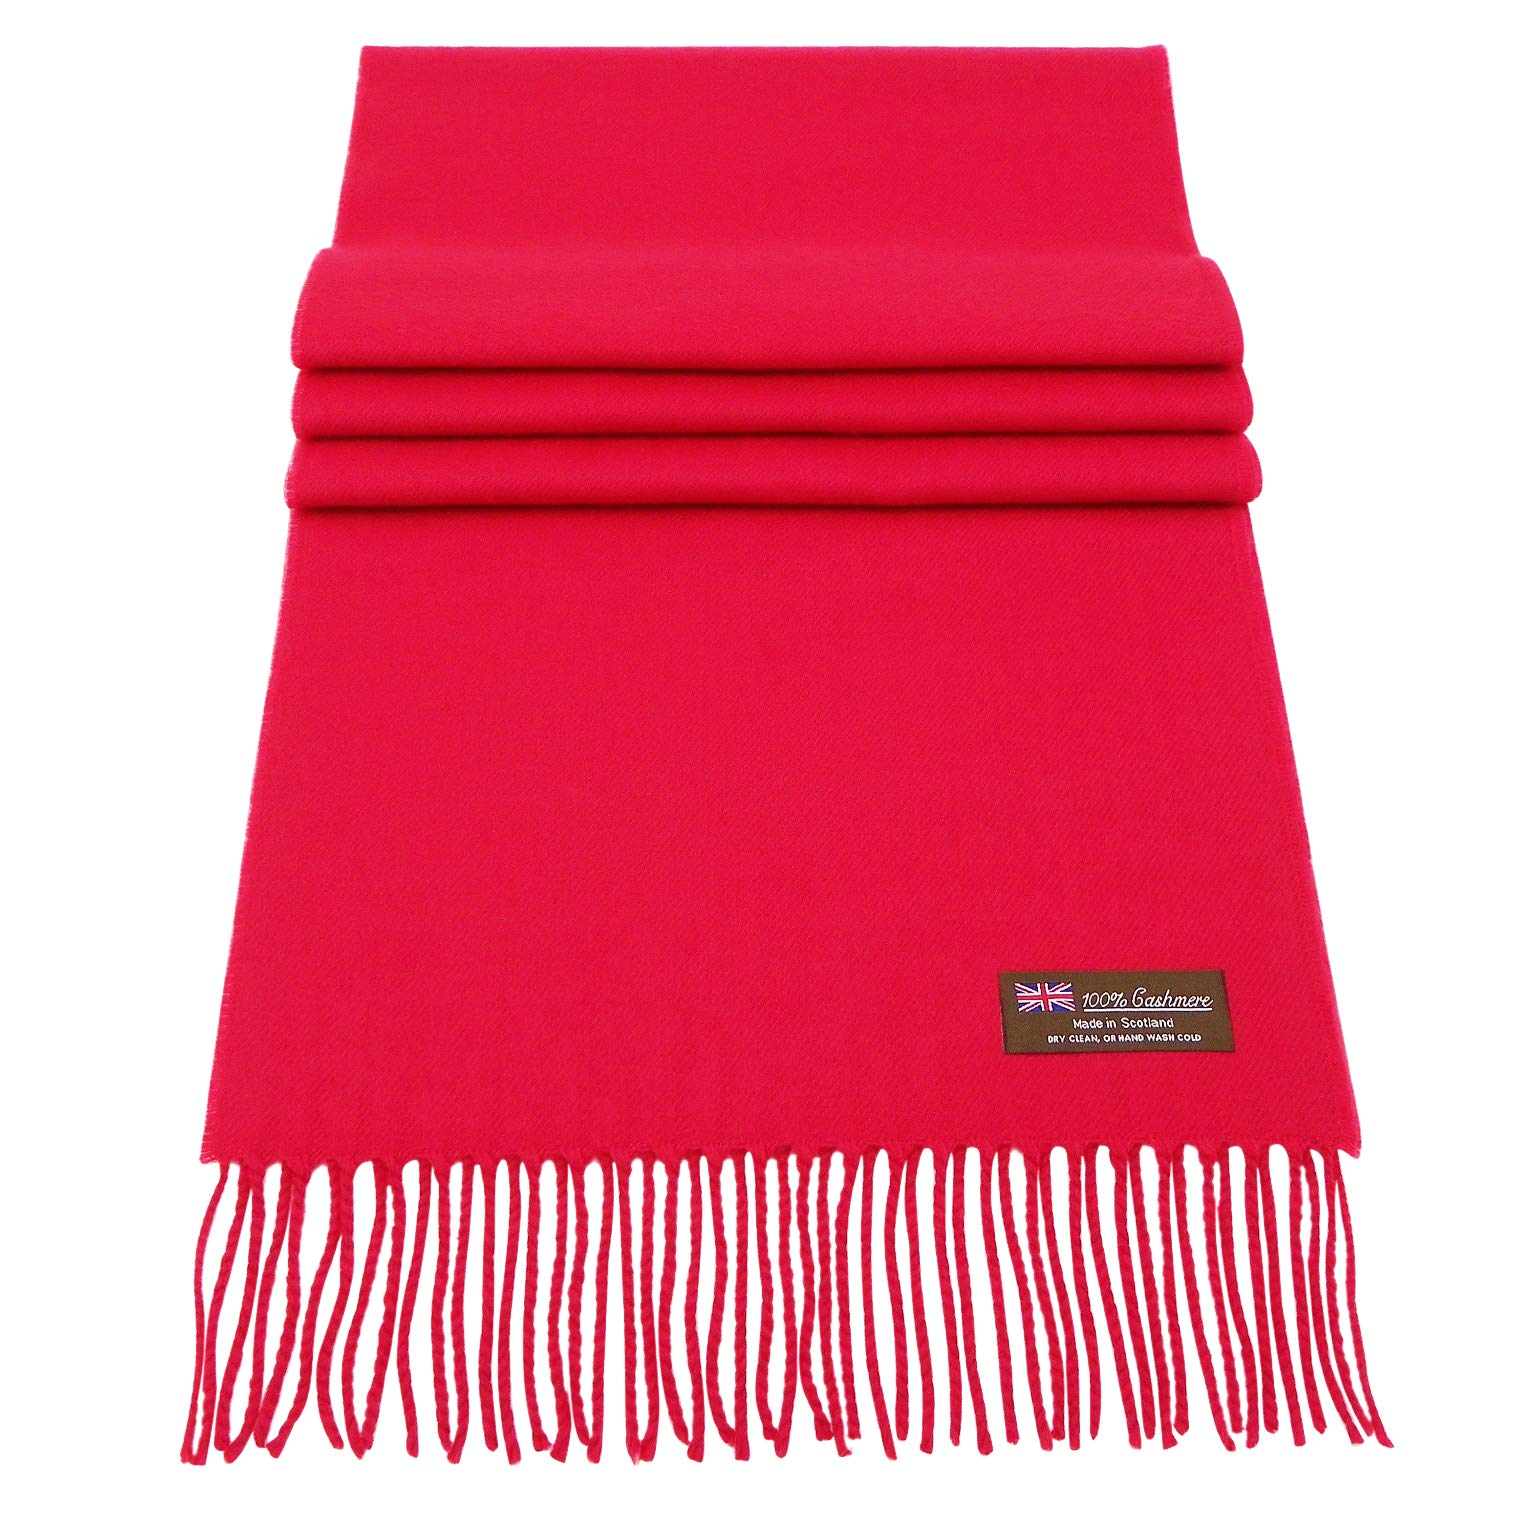 Rosemarie Collections 100% Cashmere Winter Scarf Made In Scotland (Red)